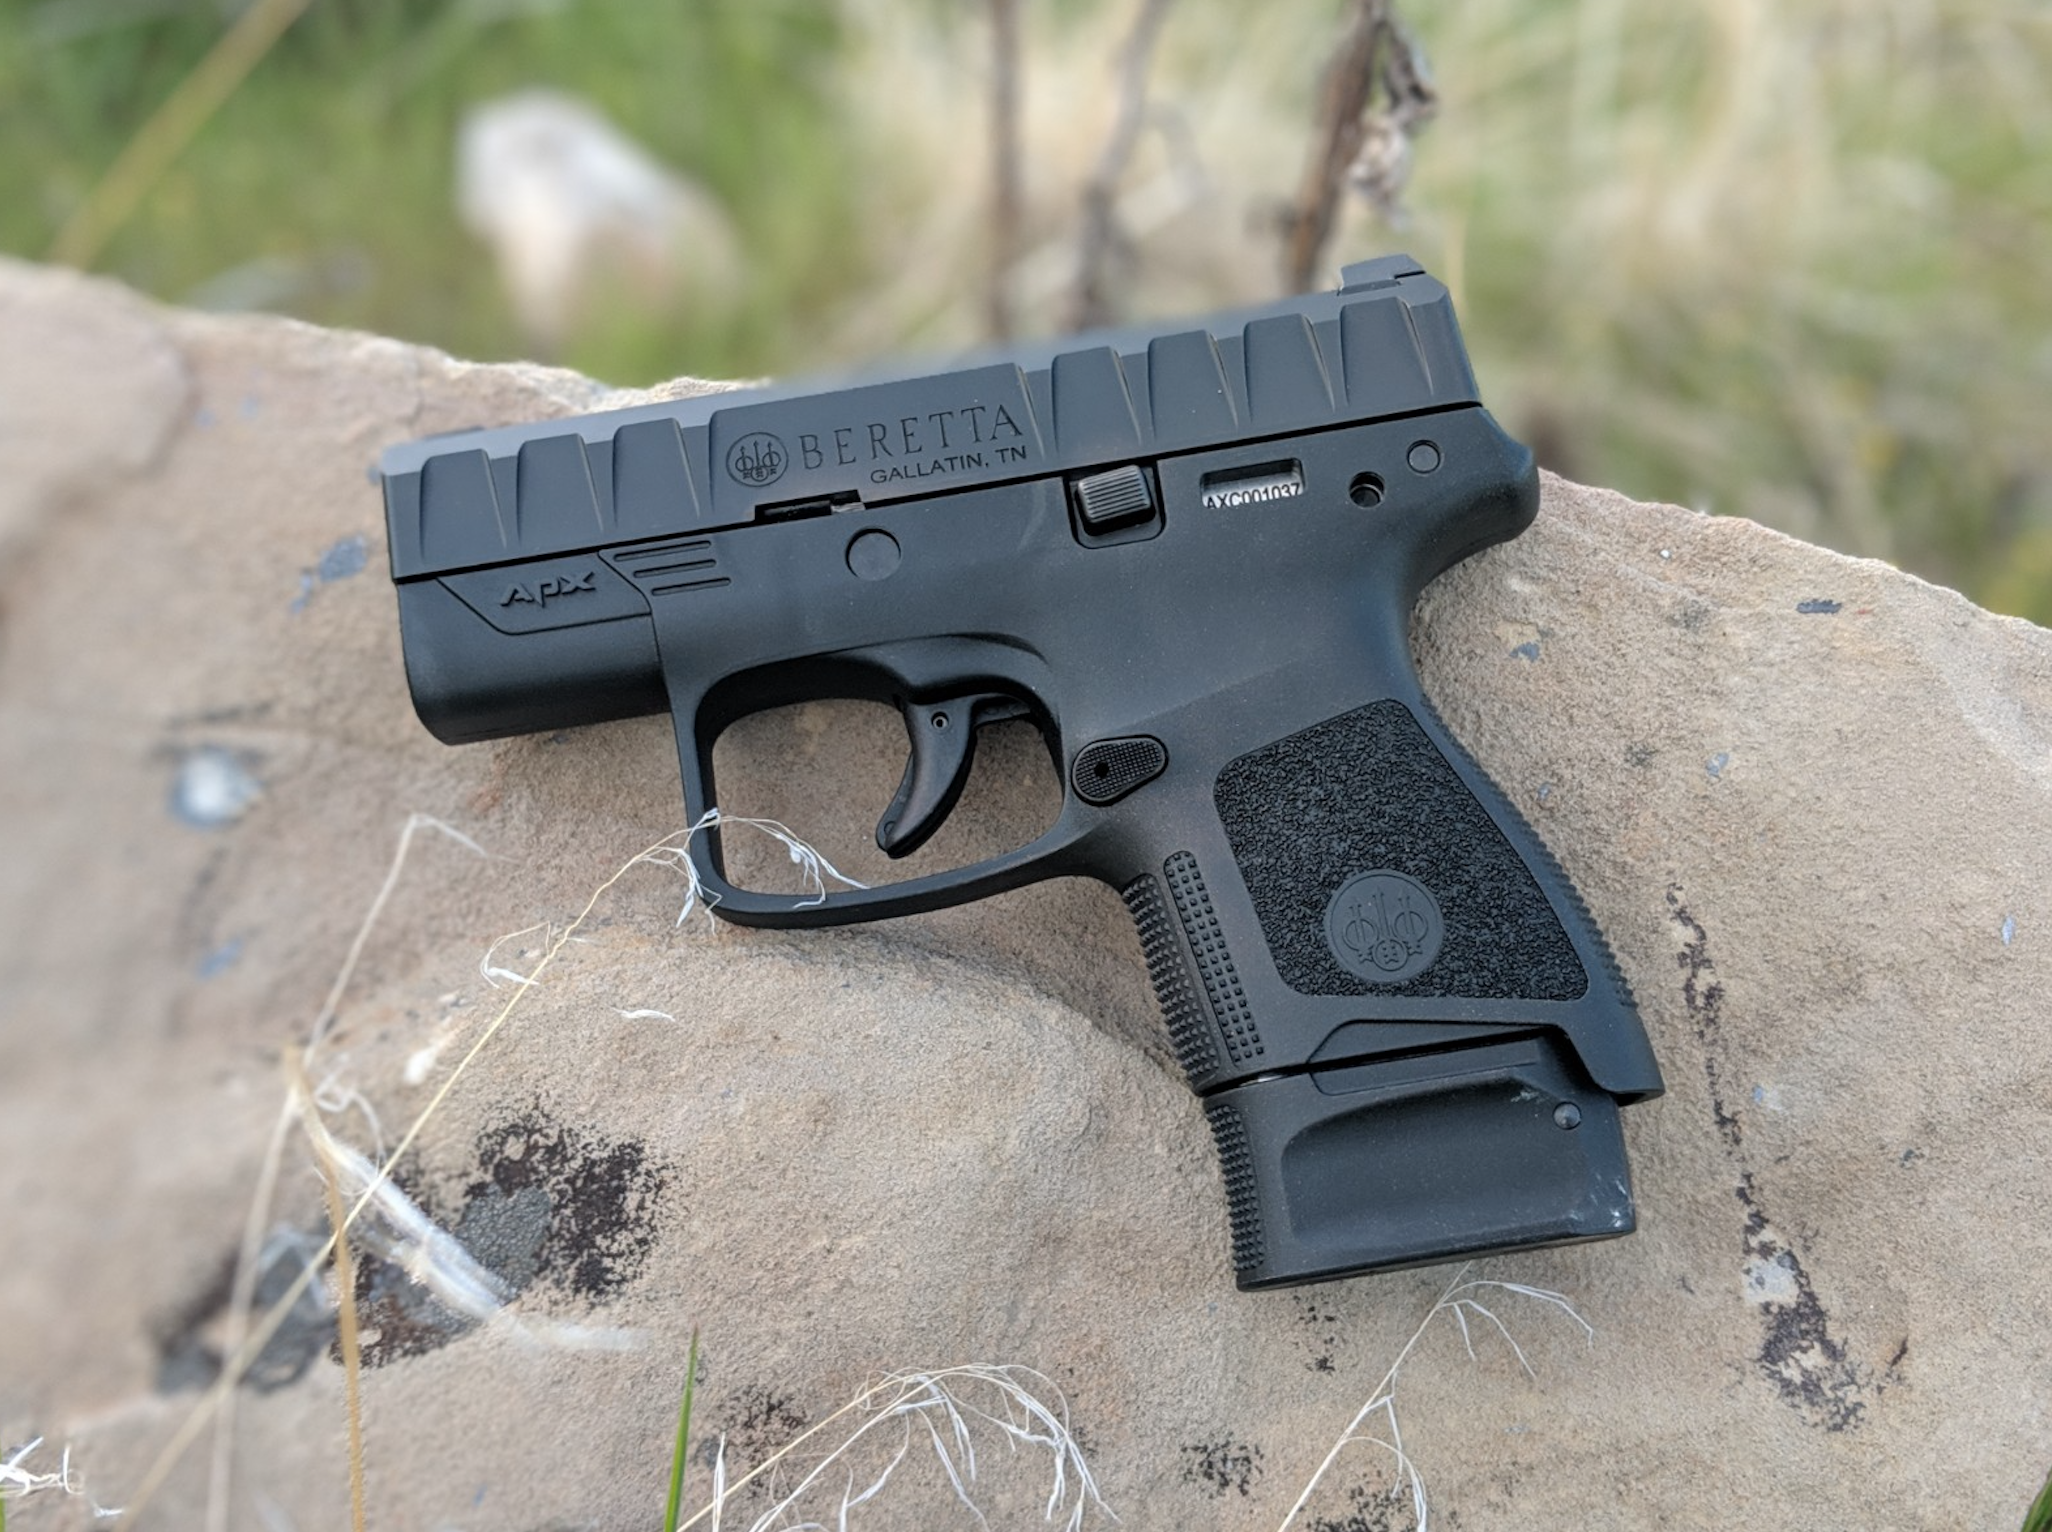 Hands on with the Beretta APX Carry